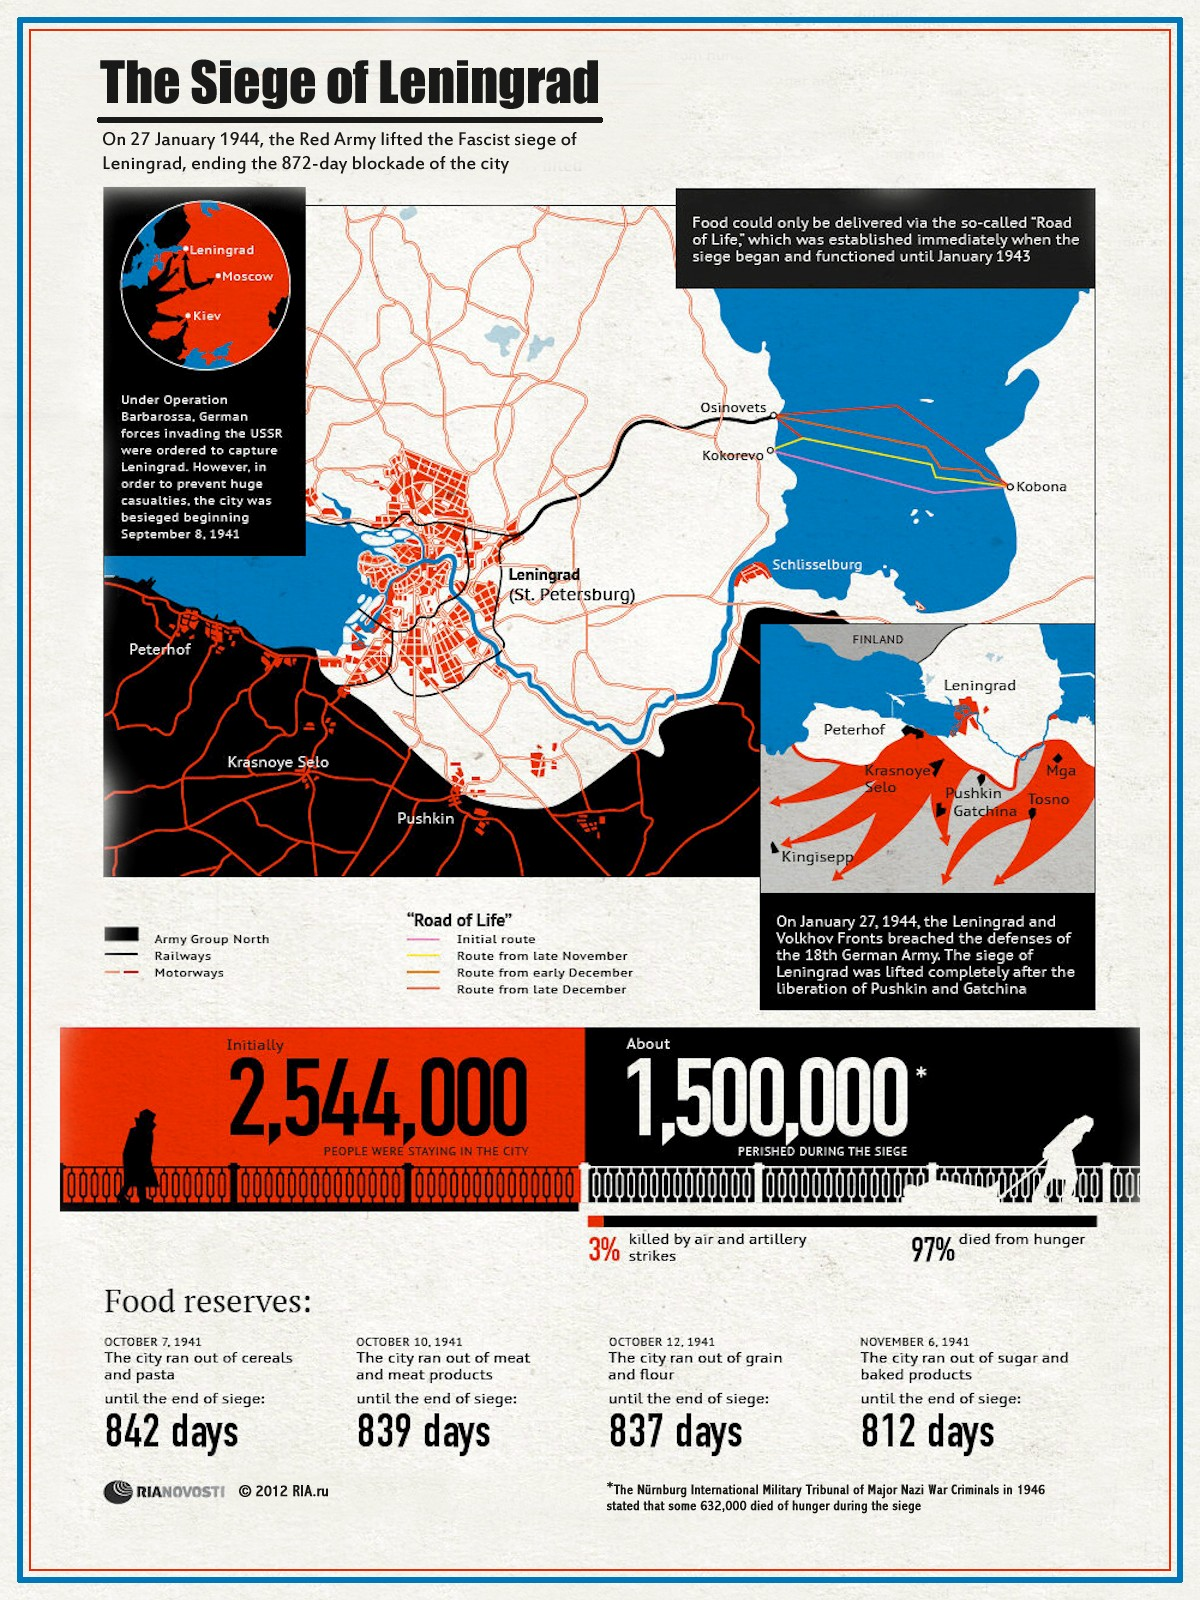 00 RIA-Novosti Infographics. The Siege of Leningrad. 2012